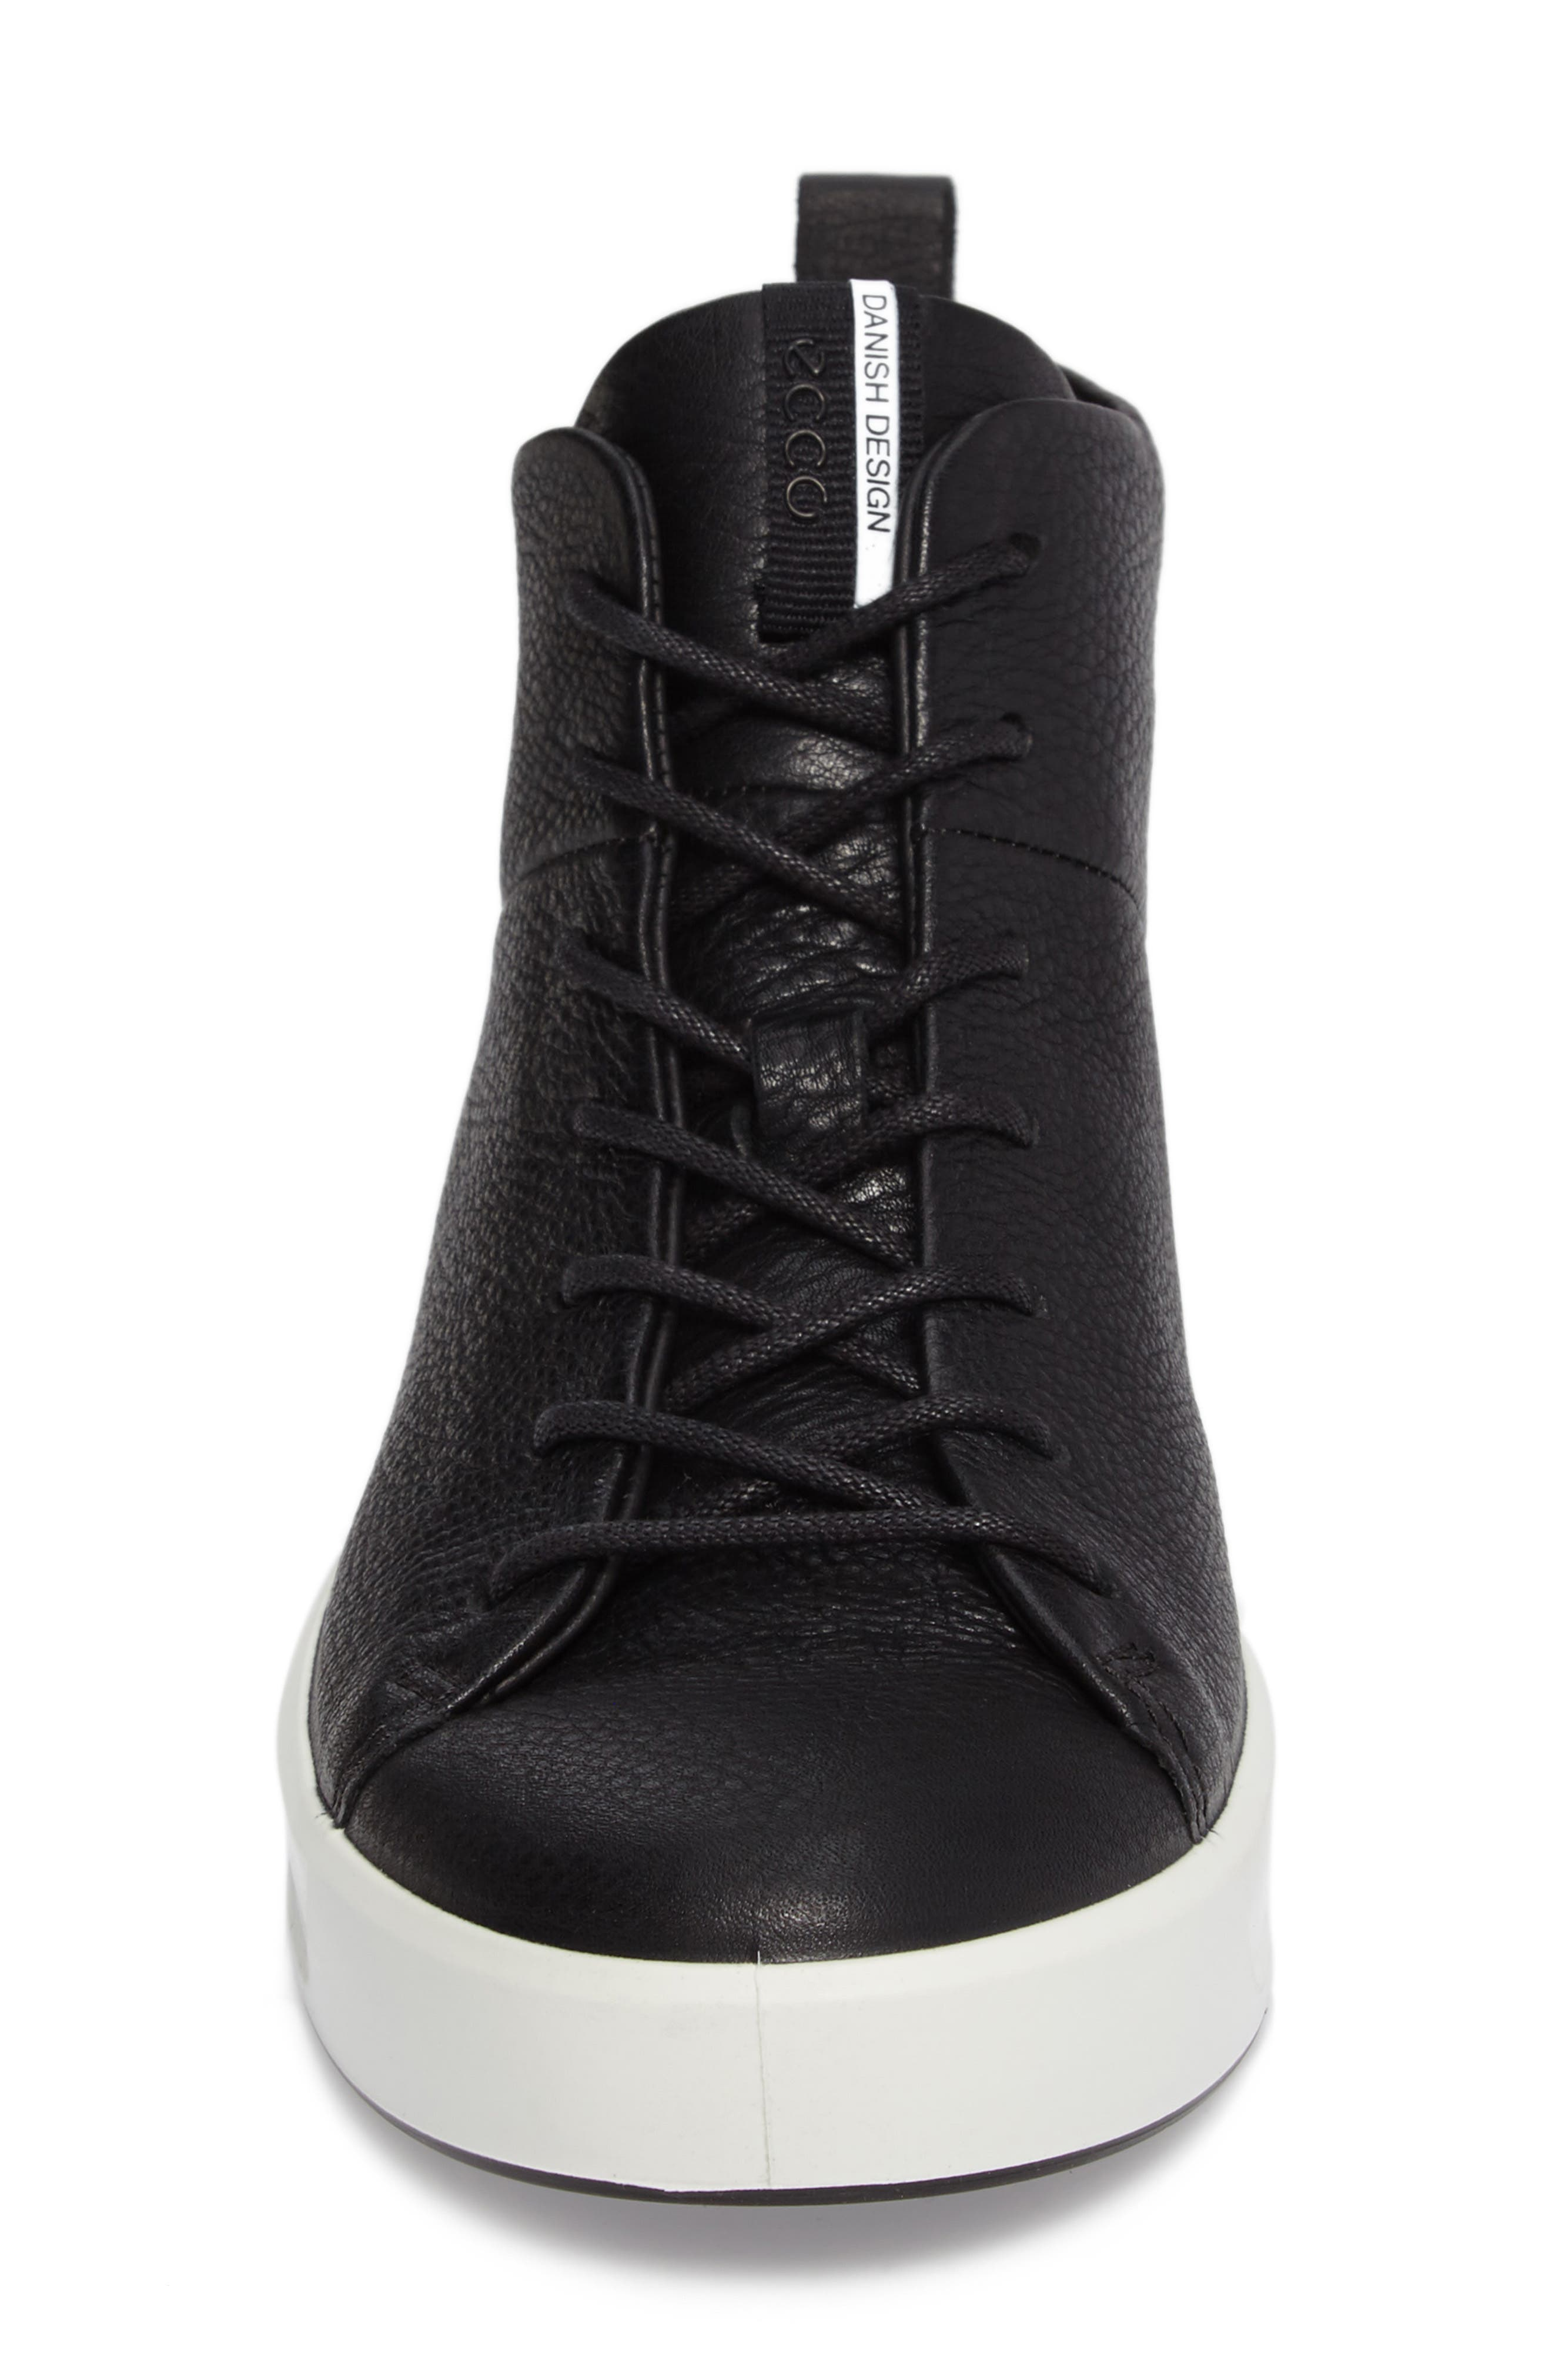 Soft 8 High Top Sneaker,                             Alternate thumbnail 4, color,                             Black Leather